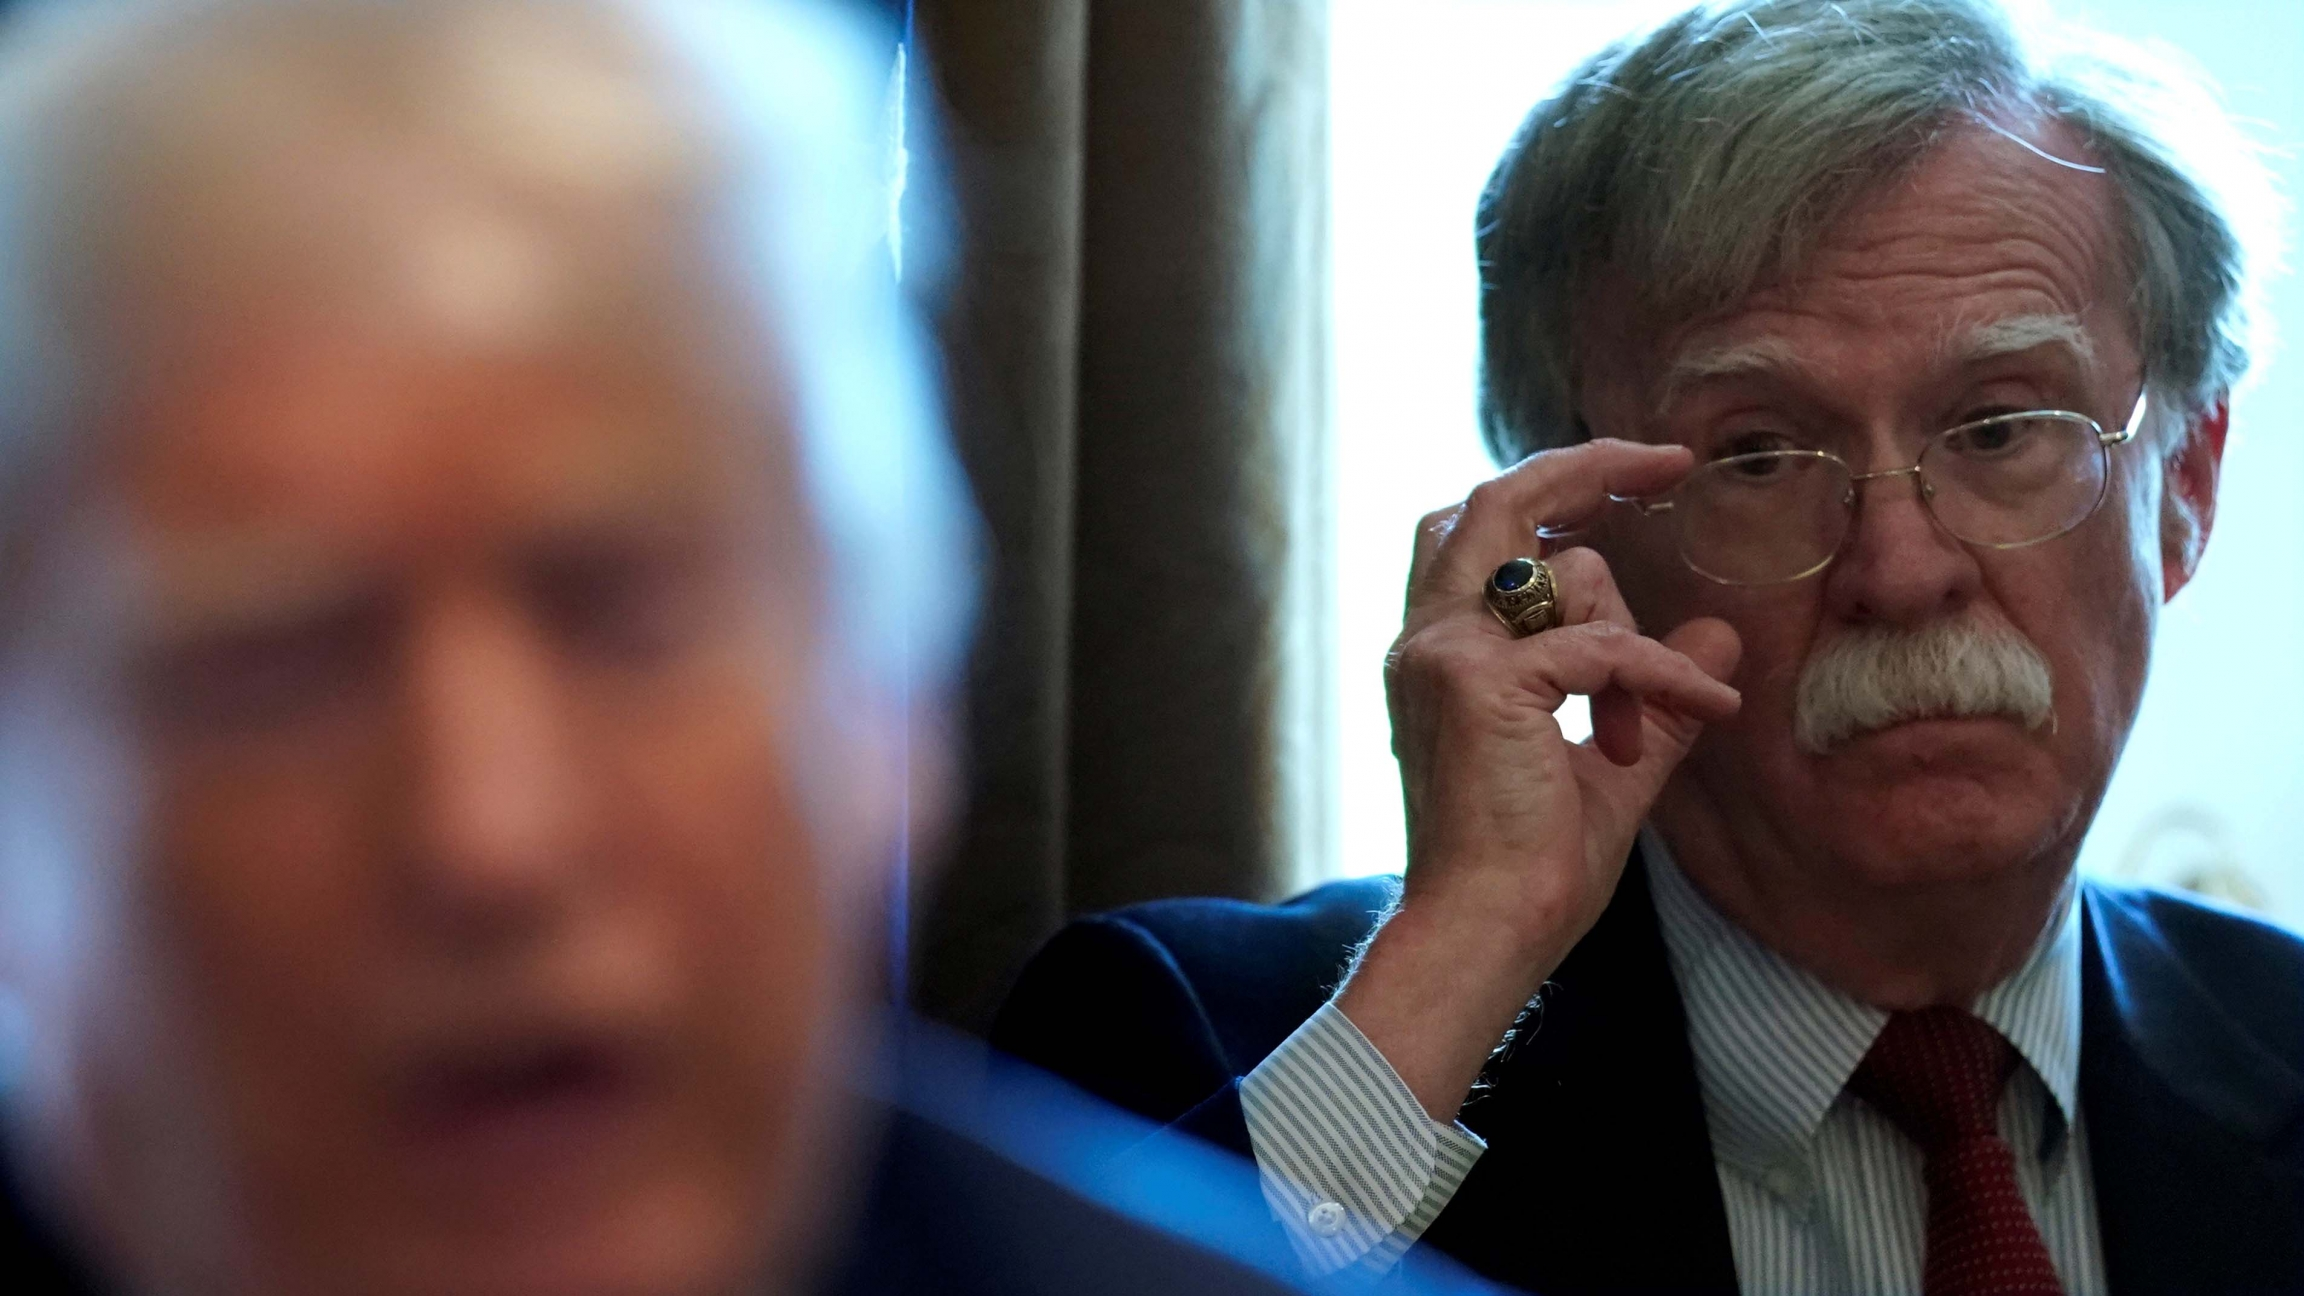 Then-National Security Adviser John Bolton listens as US President Donald Trump holds a Cabinet meeting at the White House in Washington, DC, on April 9, 2018.